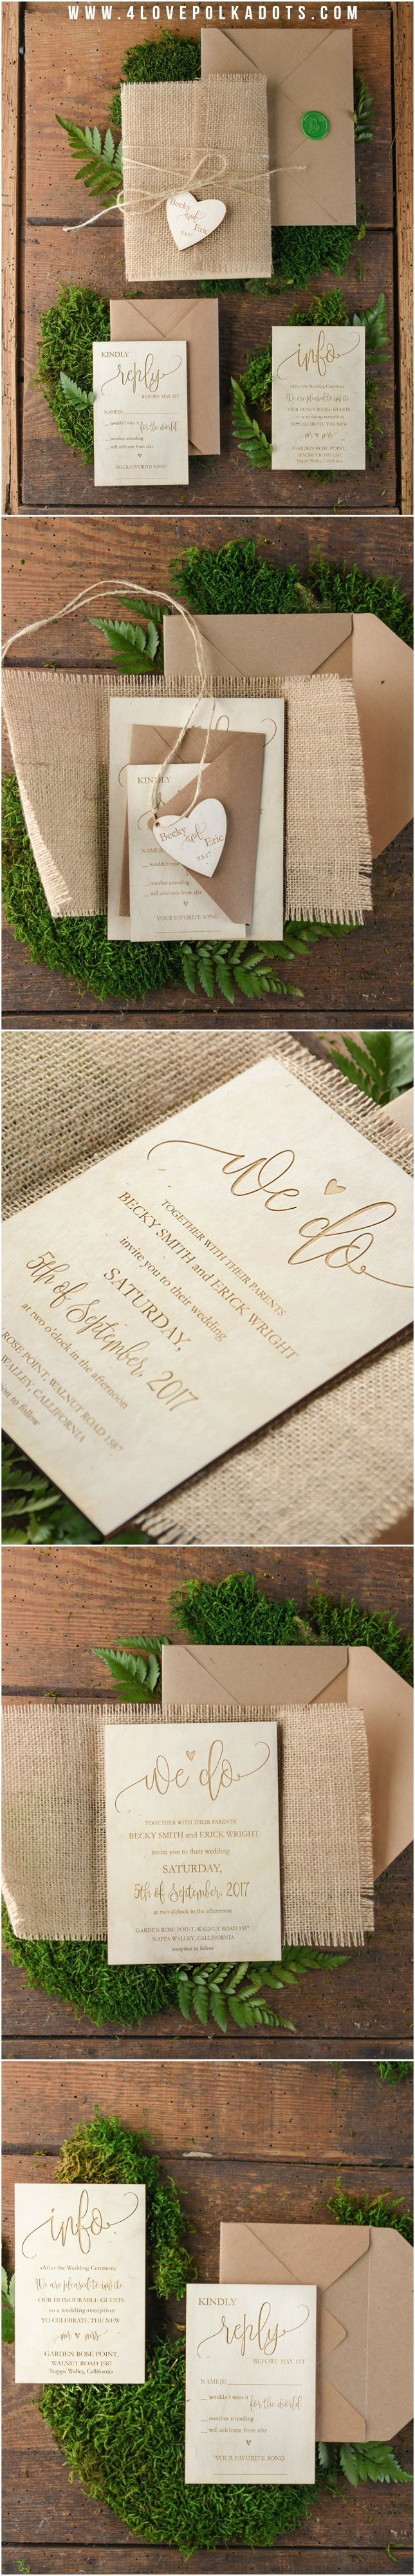 105 Best Burlap Weddings Images On Pinterest Jute Wedding Ideas